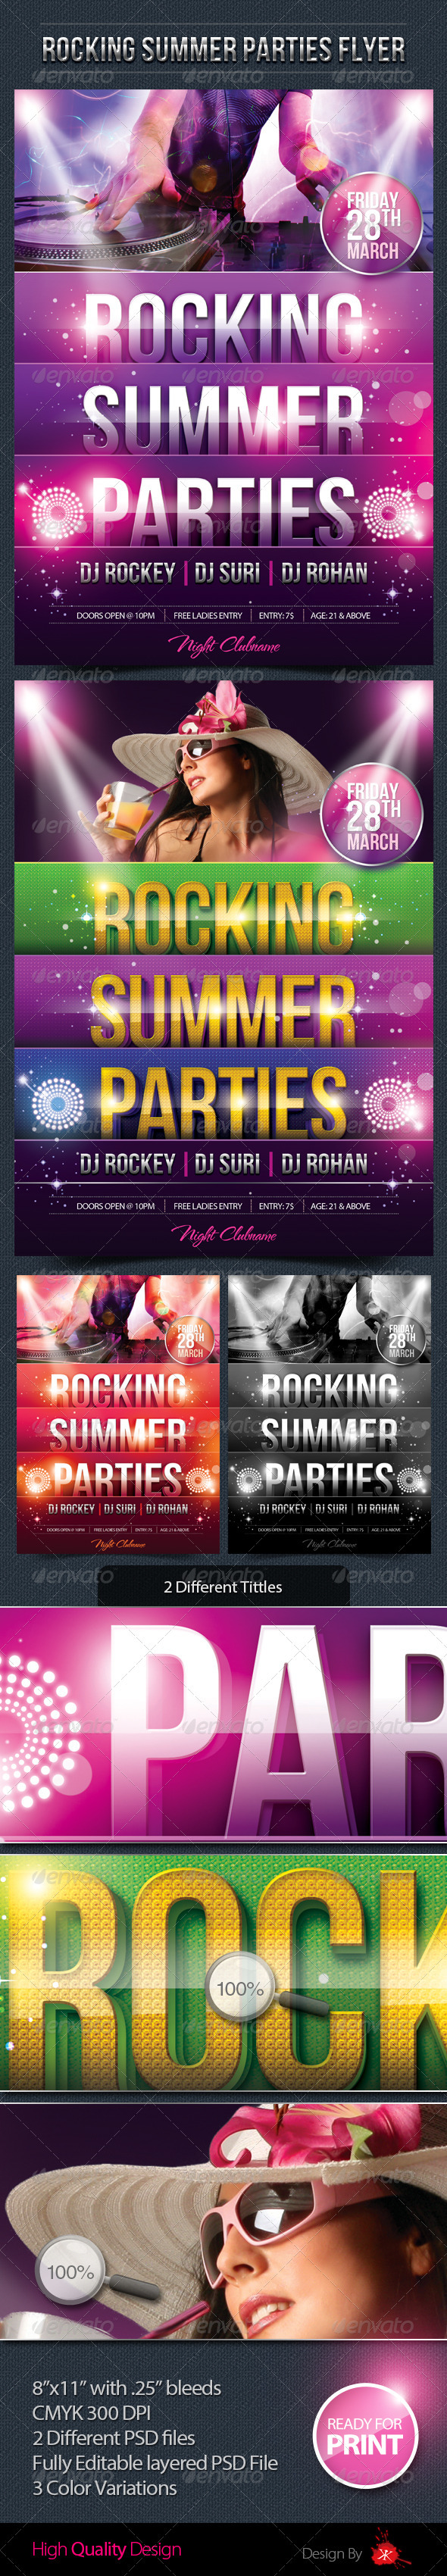 GraphicRiver Rocking Summer Party Flyer 2912982